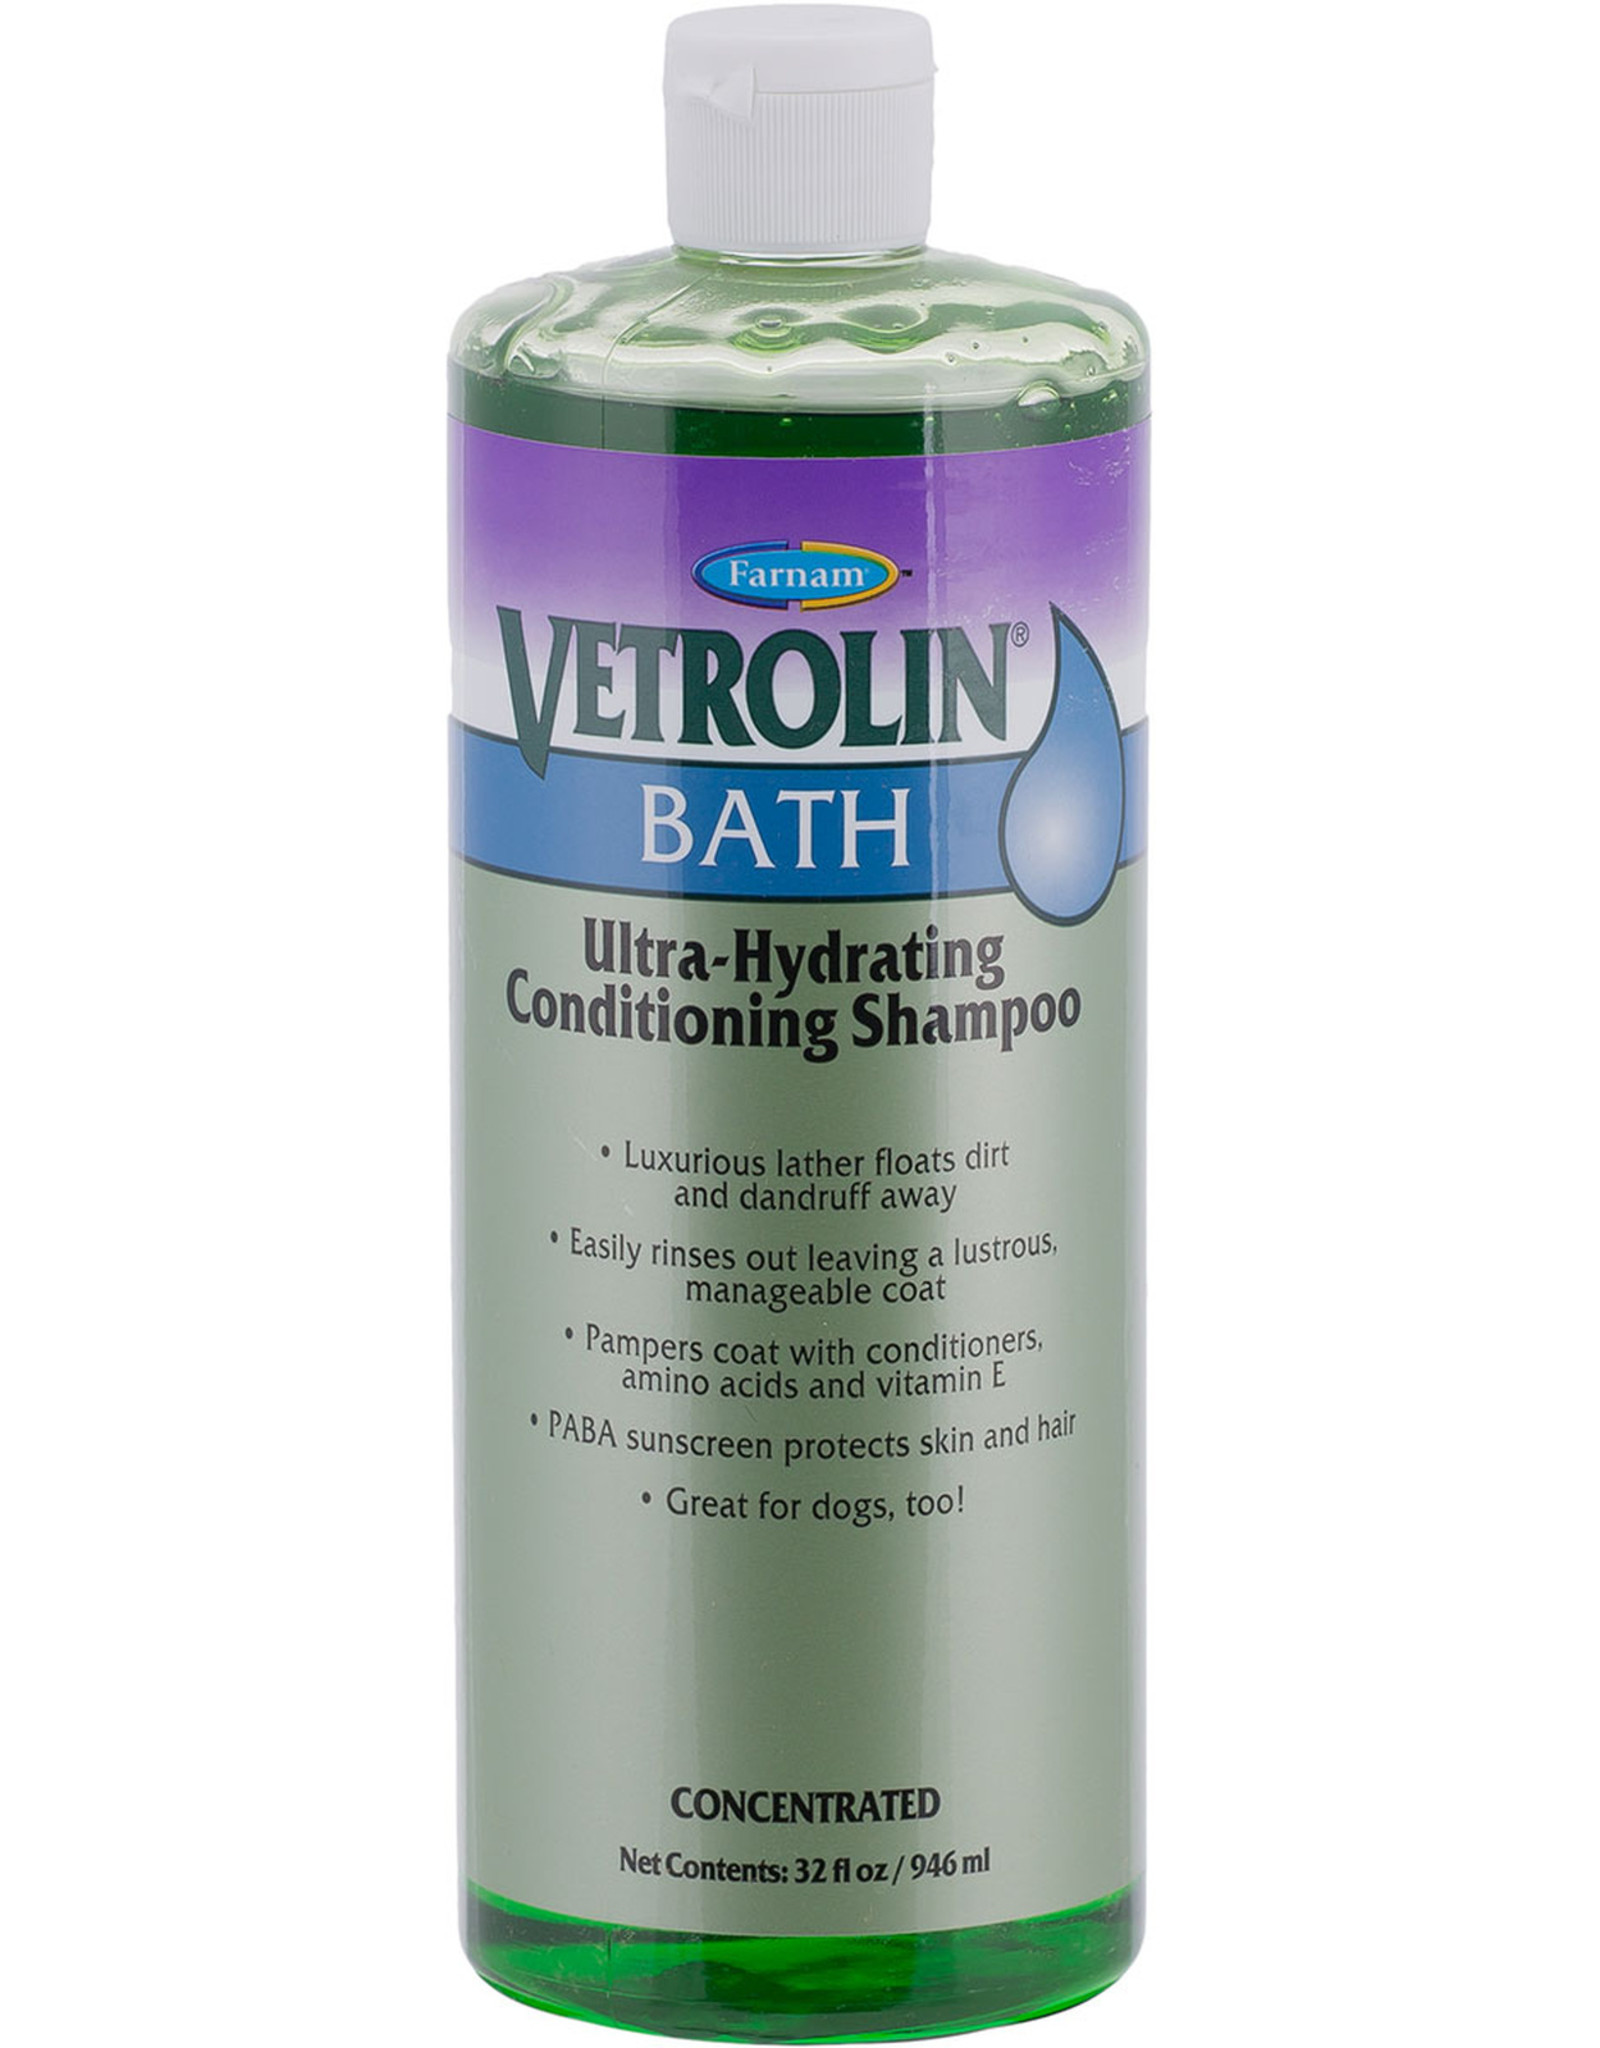 Farnam Vetrolin Bath